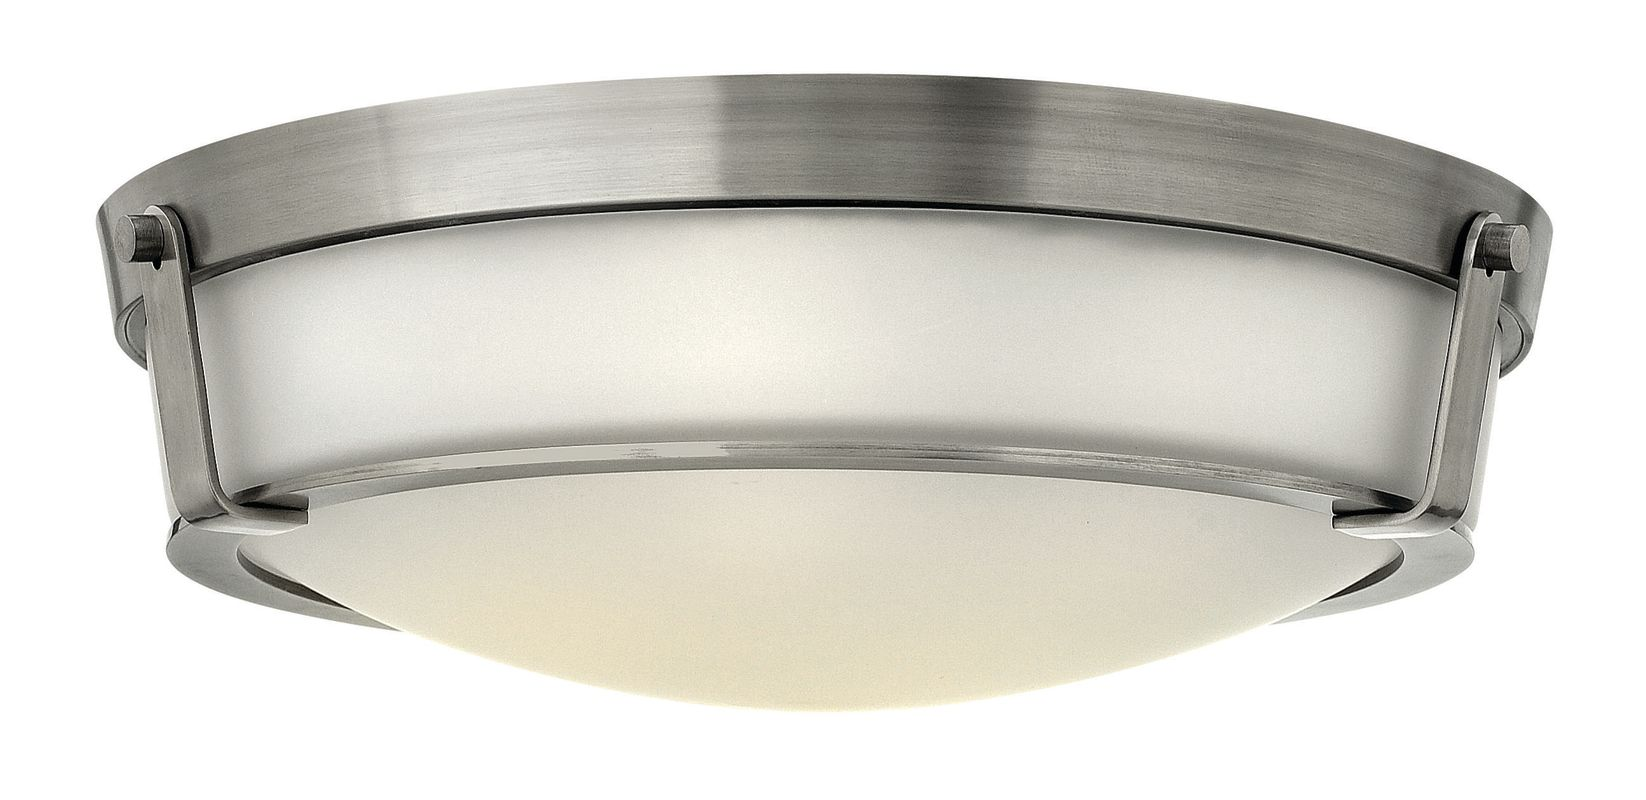 Hinkley Lighting 3226 4 Light Flush Mount Ceiling Fixture from the Sale $449.00 ITEM#: 2493710 MODEL# :3226AN UPC#: 640665322606 :